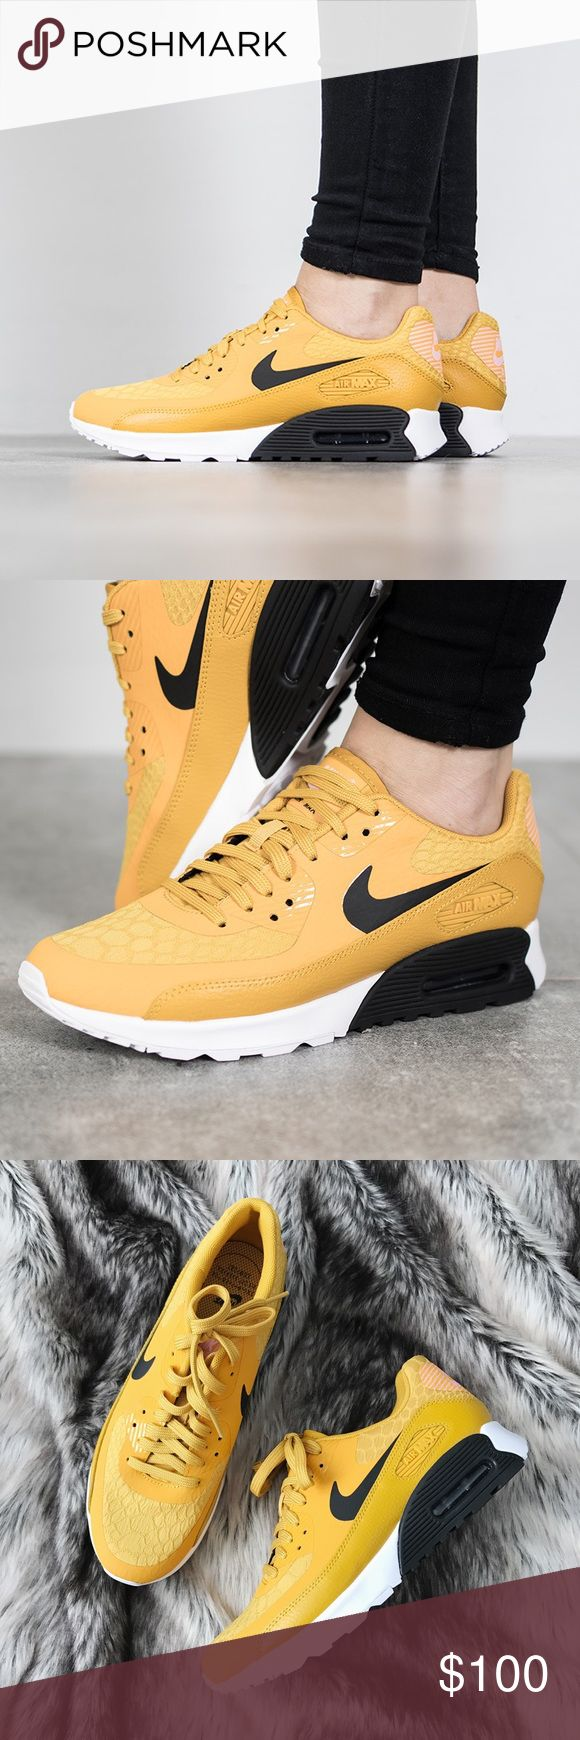 Nike Mustard Air Max 90 Ultra 2.0 Sneakers •A lightweight, cushioned footbed and Air Max unit enhance the comfort of a classic Nike sneaker that traces origins all the way back to Nike footwear of the 1970s.  •Women's size 8,  true to size but best for a normal-wide width foot.  •New in box, no lid.  •NO TRADES/HOLDS/PAYPAL/MERC/VINTED/NONSENSE. Nike Shoes Sneakers